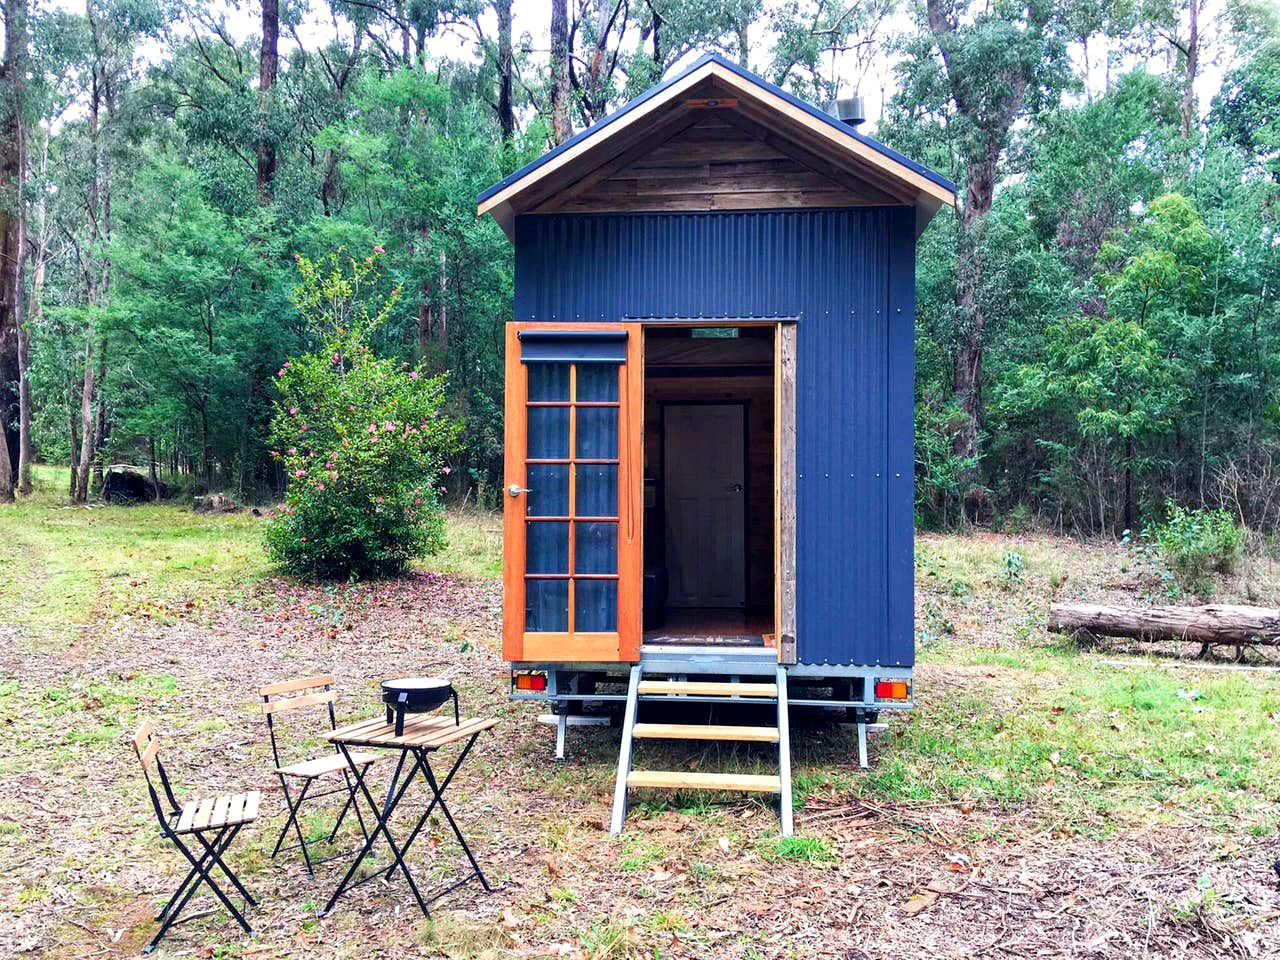 Unique tiny house with wood-clad interior for best glamping in Victoria.